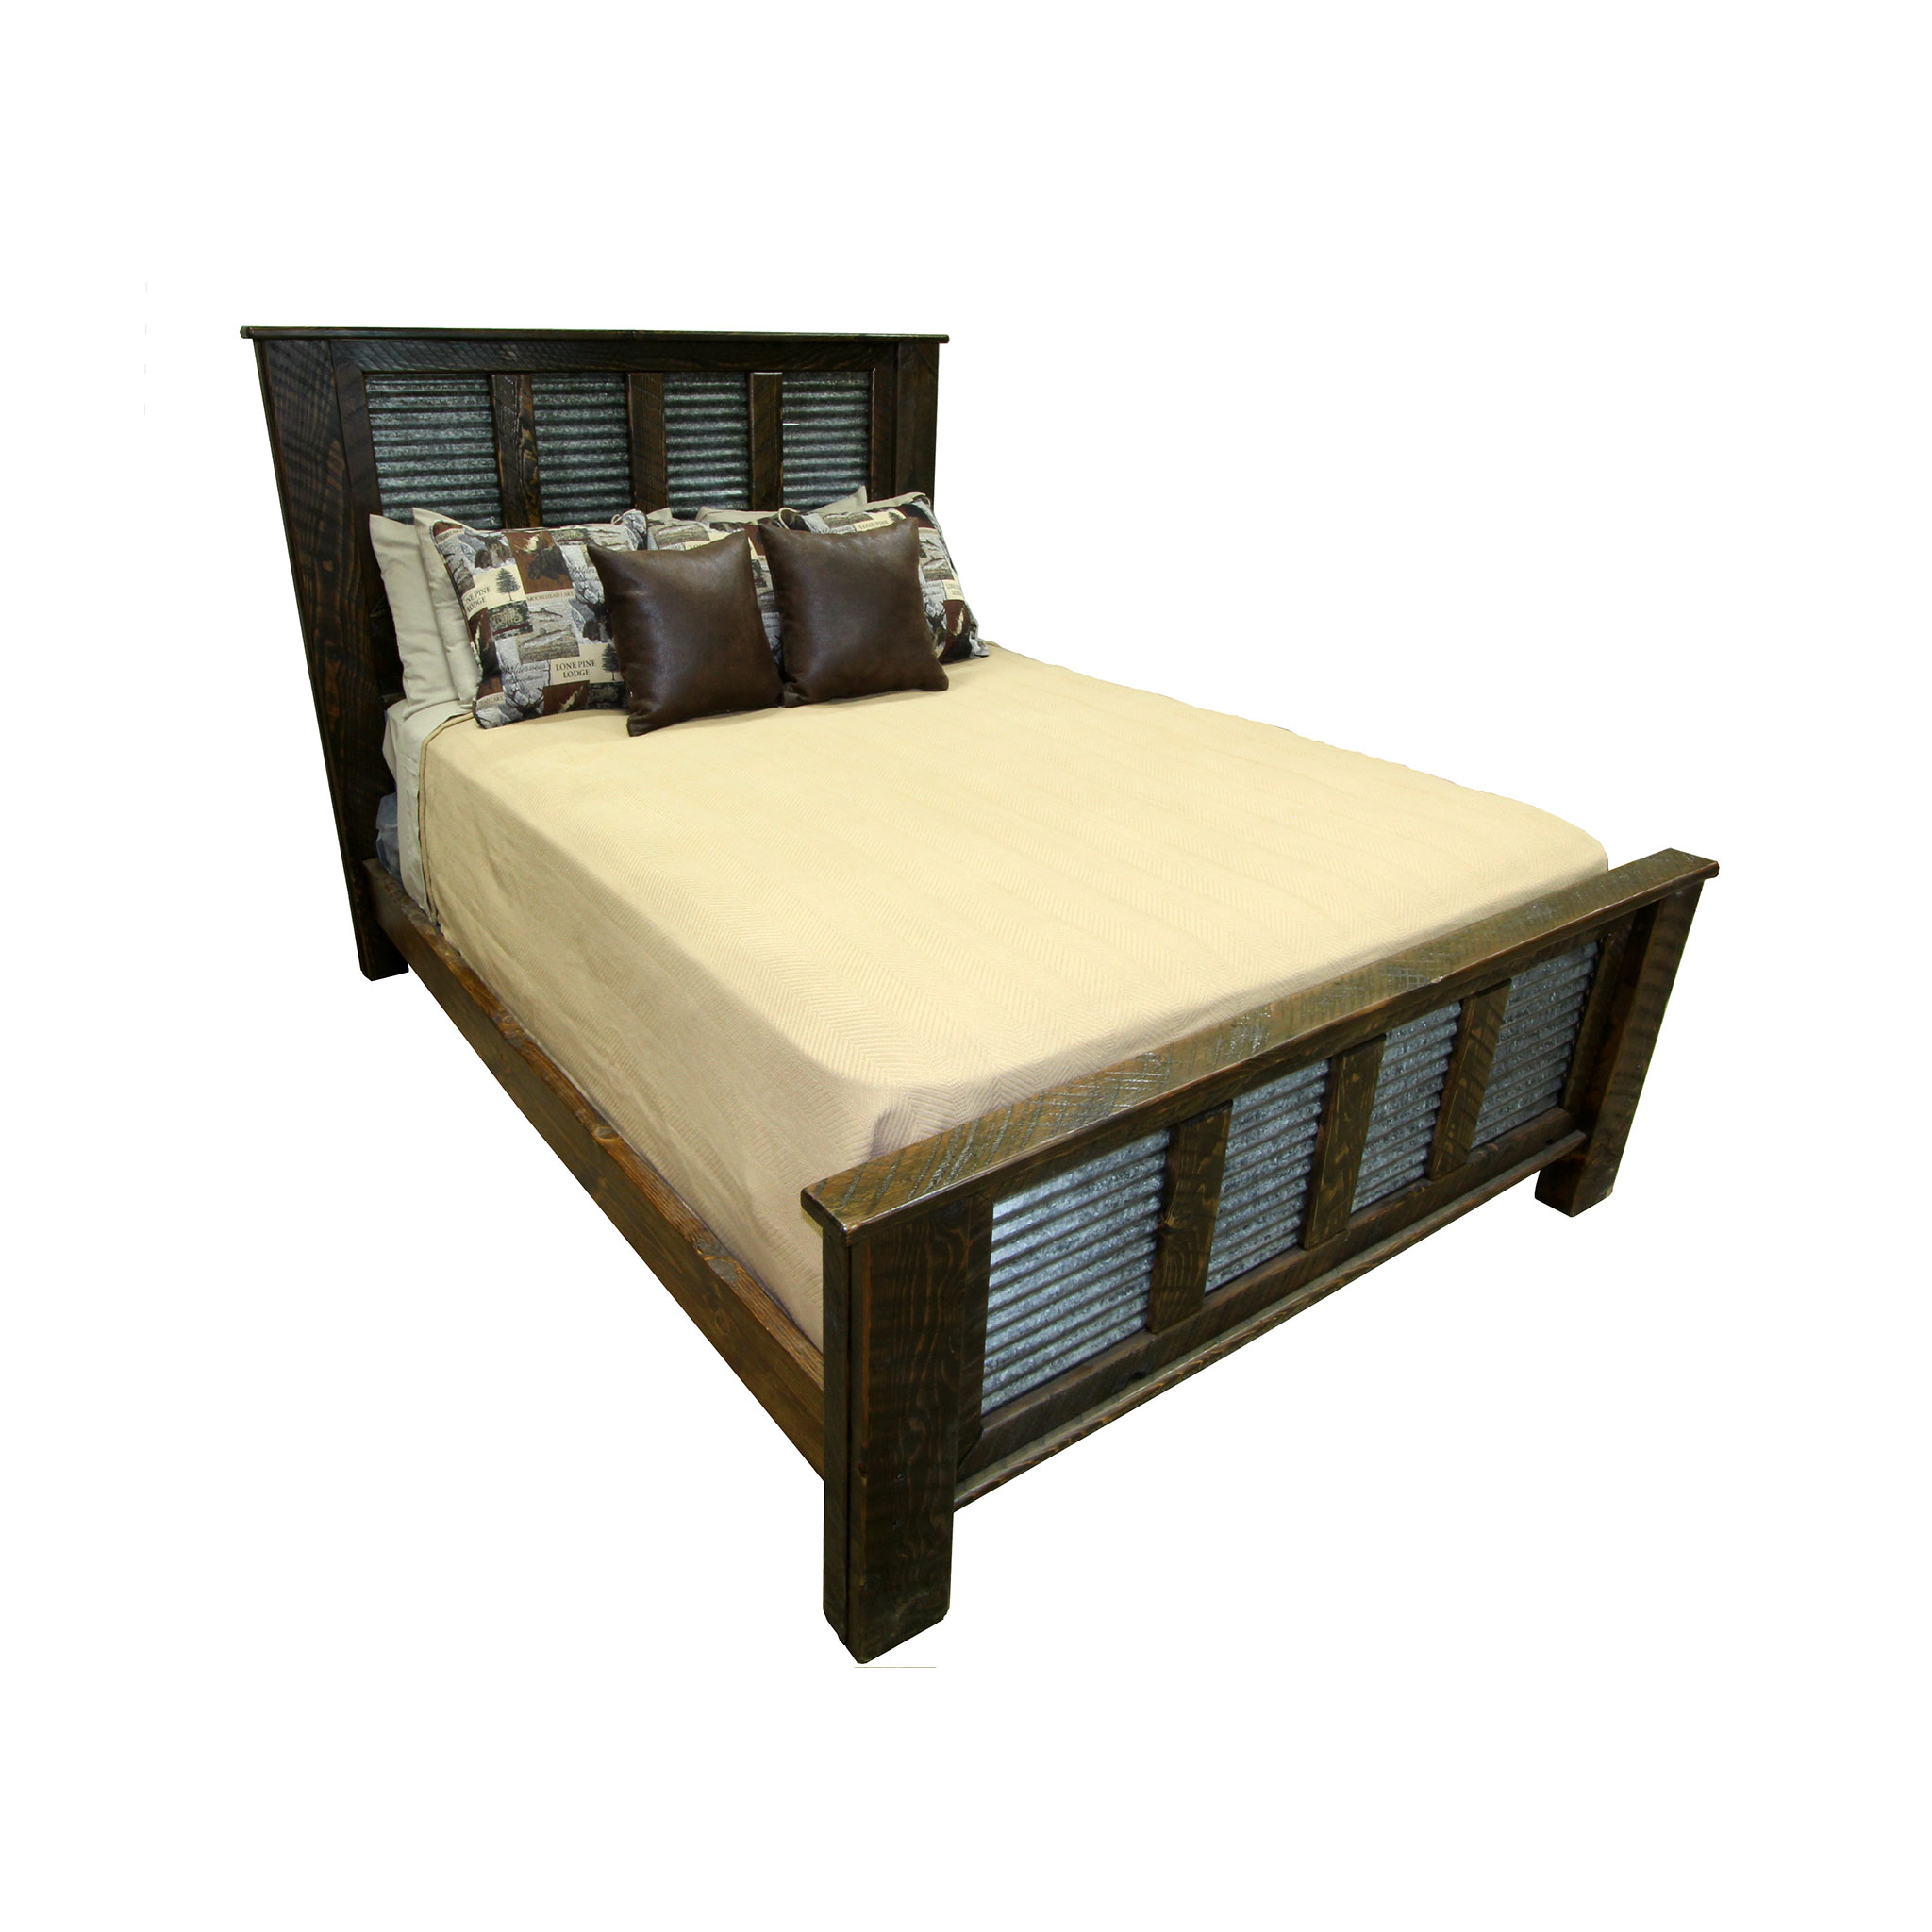 Rough Sawn Silverbow Bed in Espresso